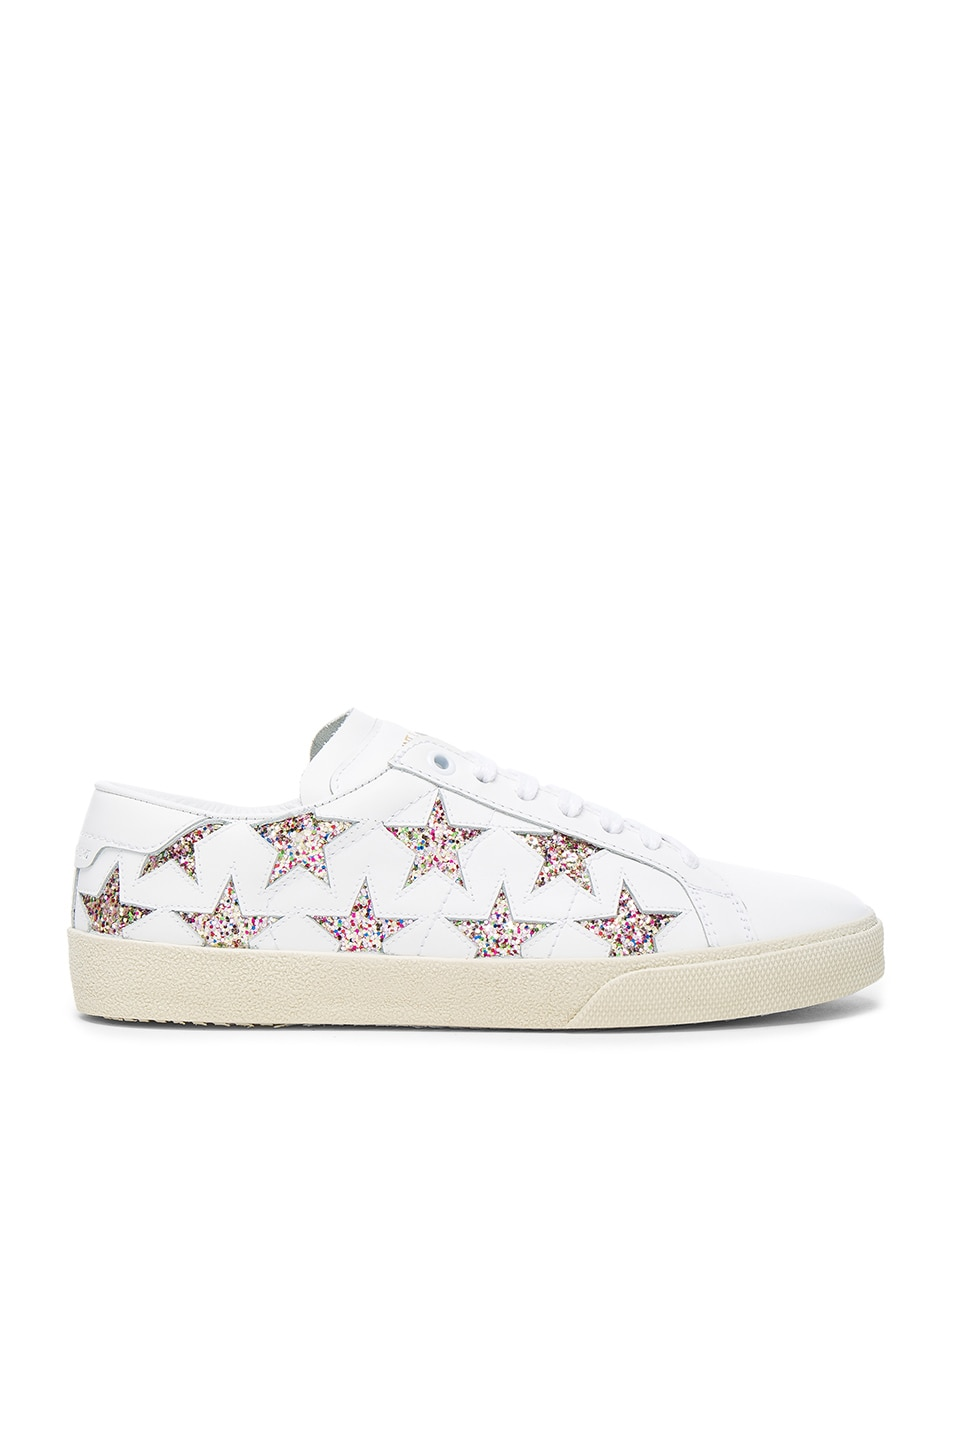 Image 1 of Saint Laurent Leather Court Classic Glitter Star Sneakers in Off White